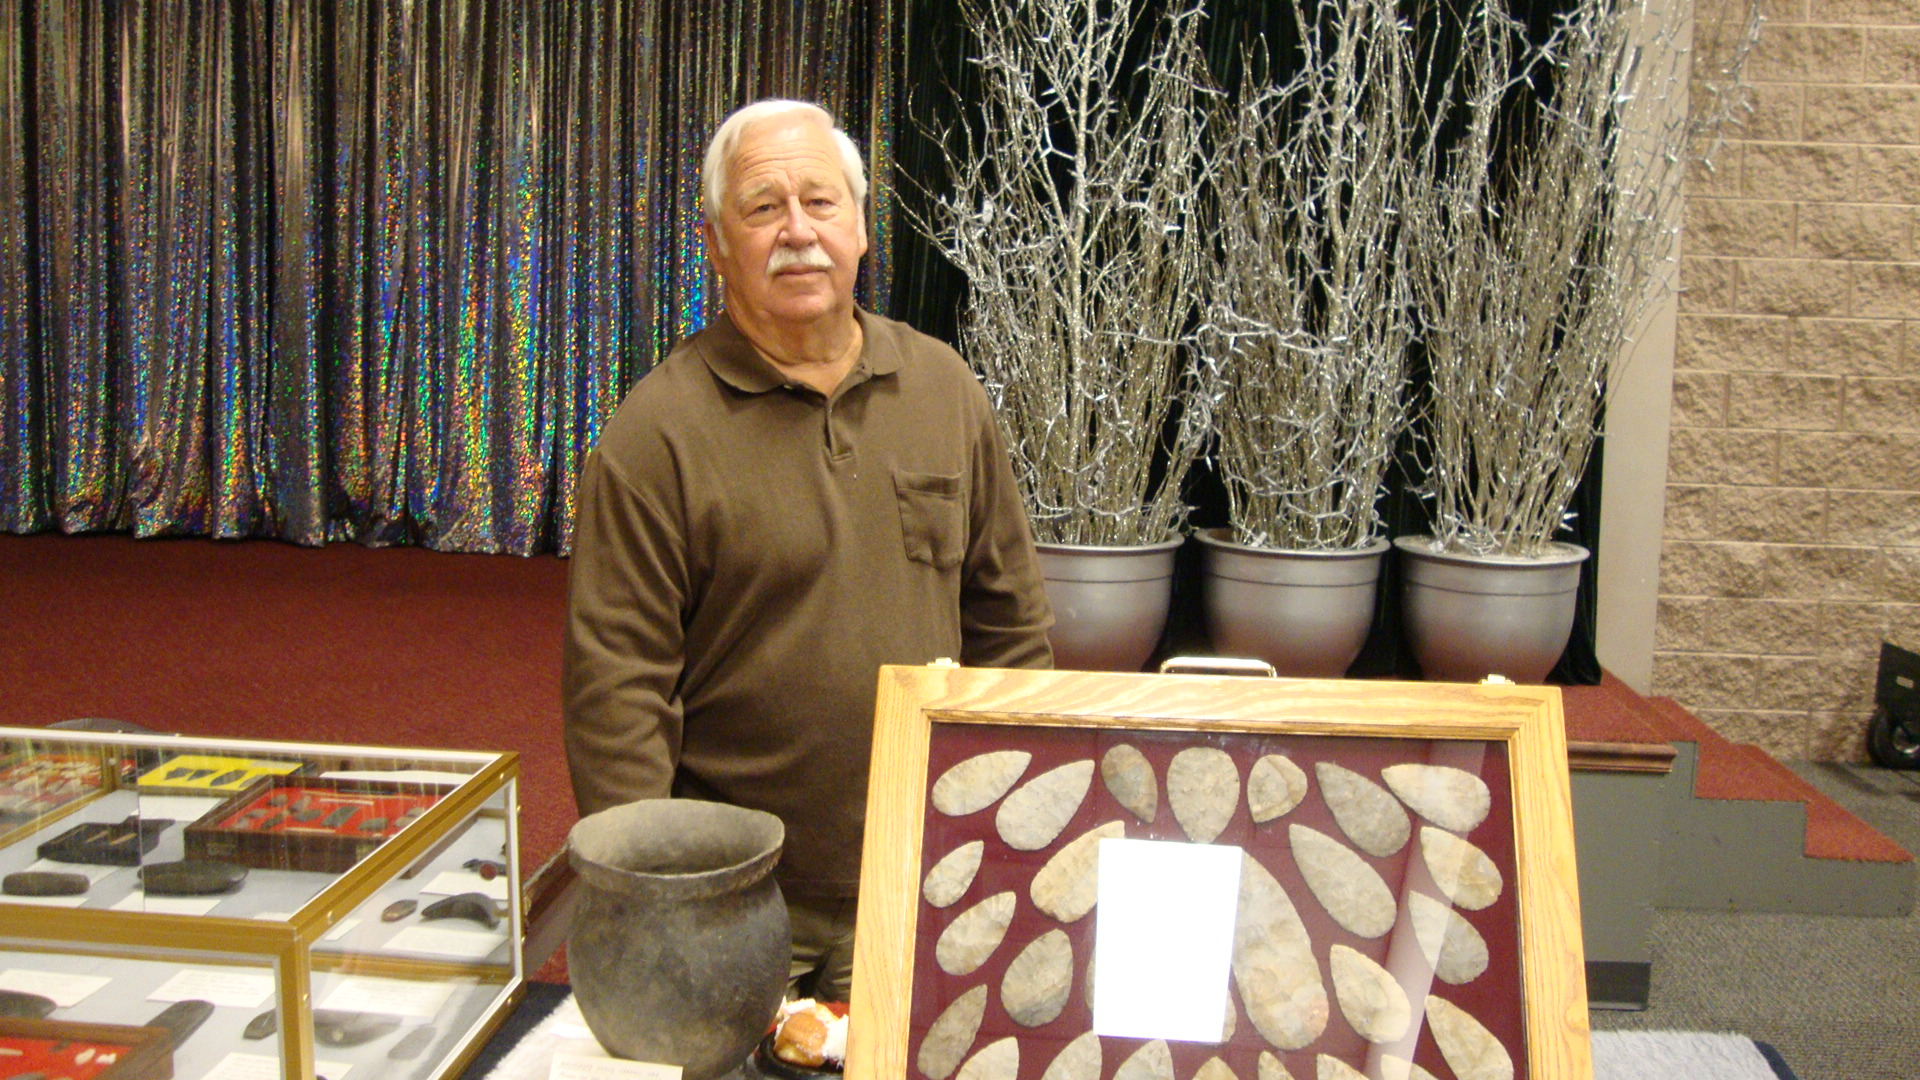 Steve Puttera with his display of finds from Cuyahauga County, Ohio